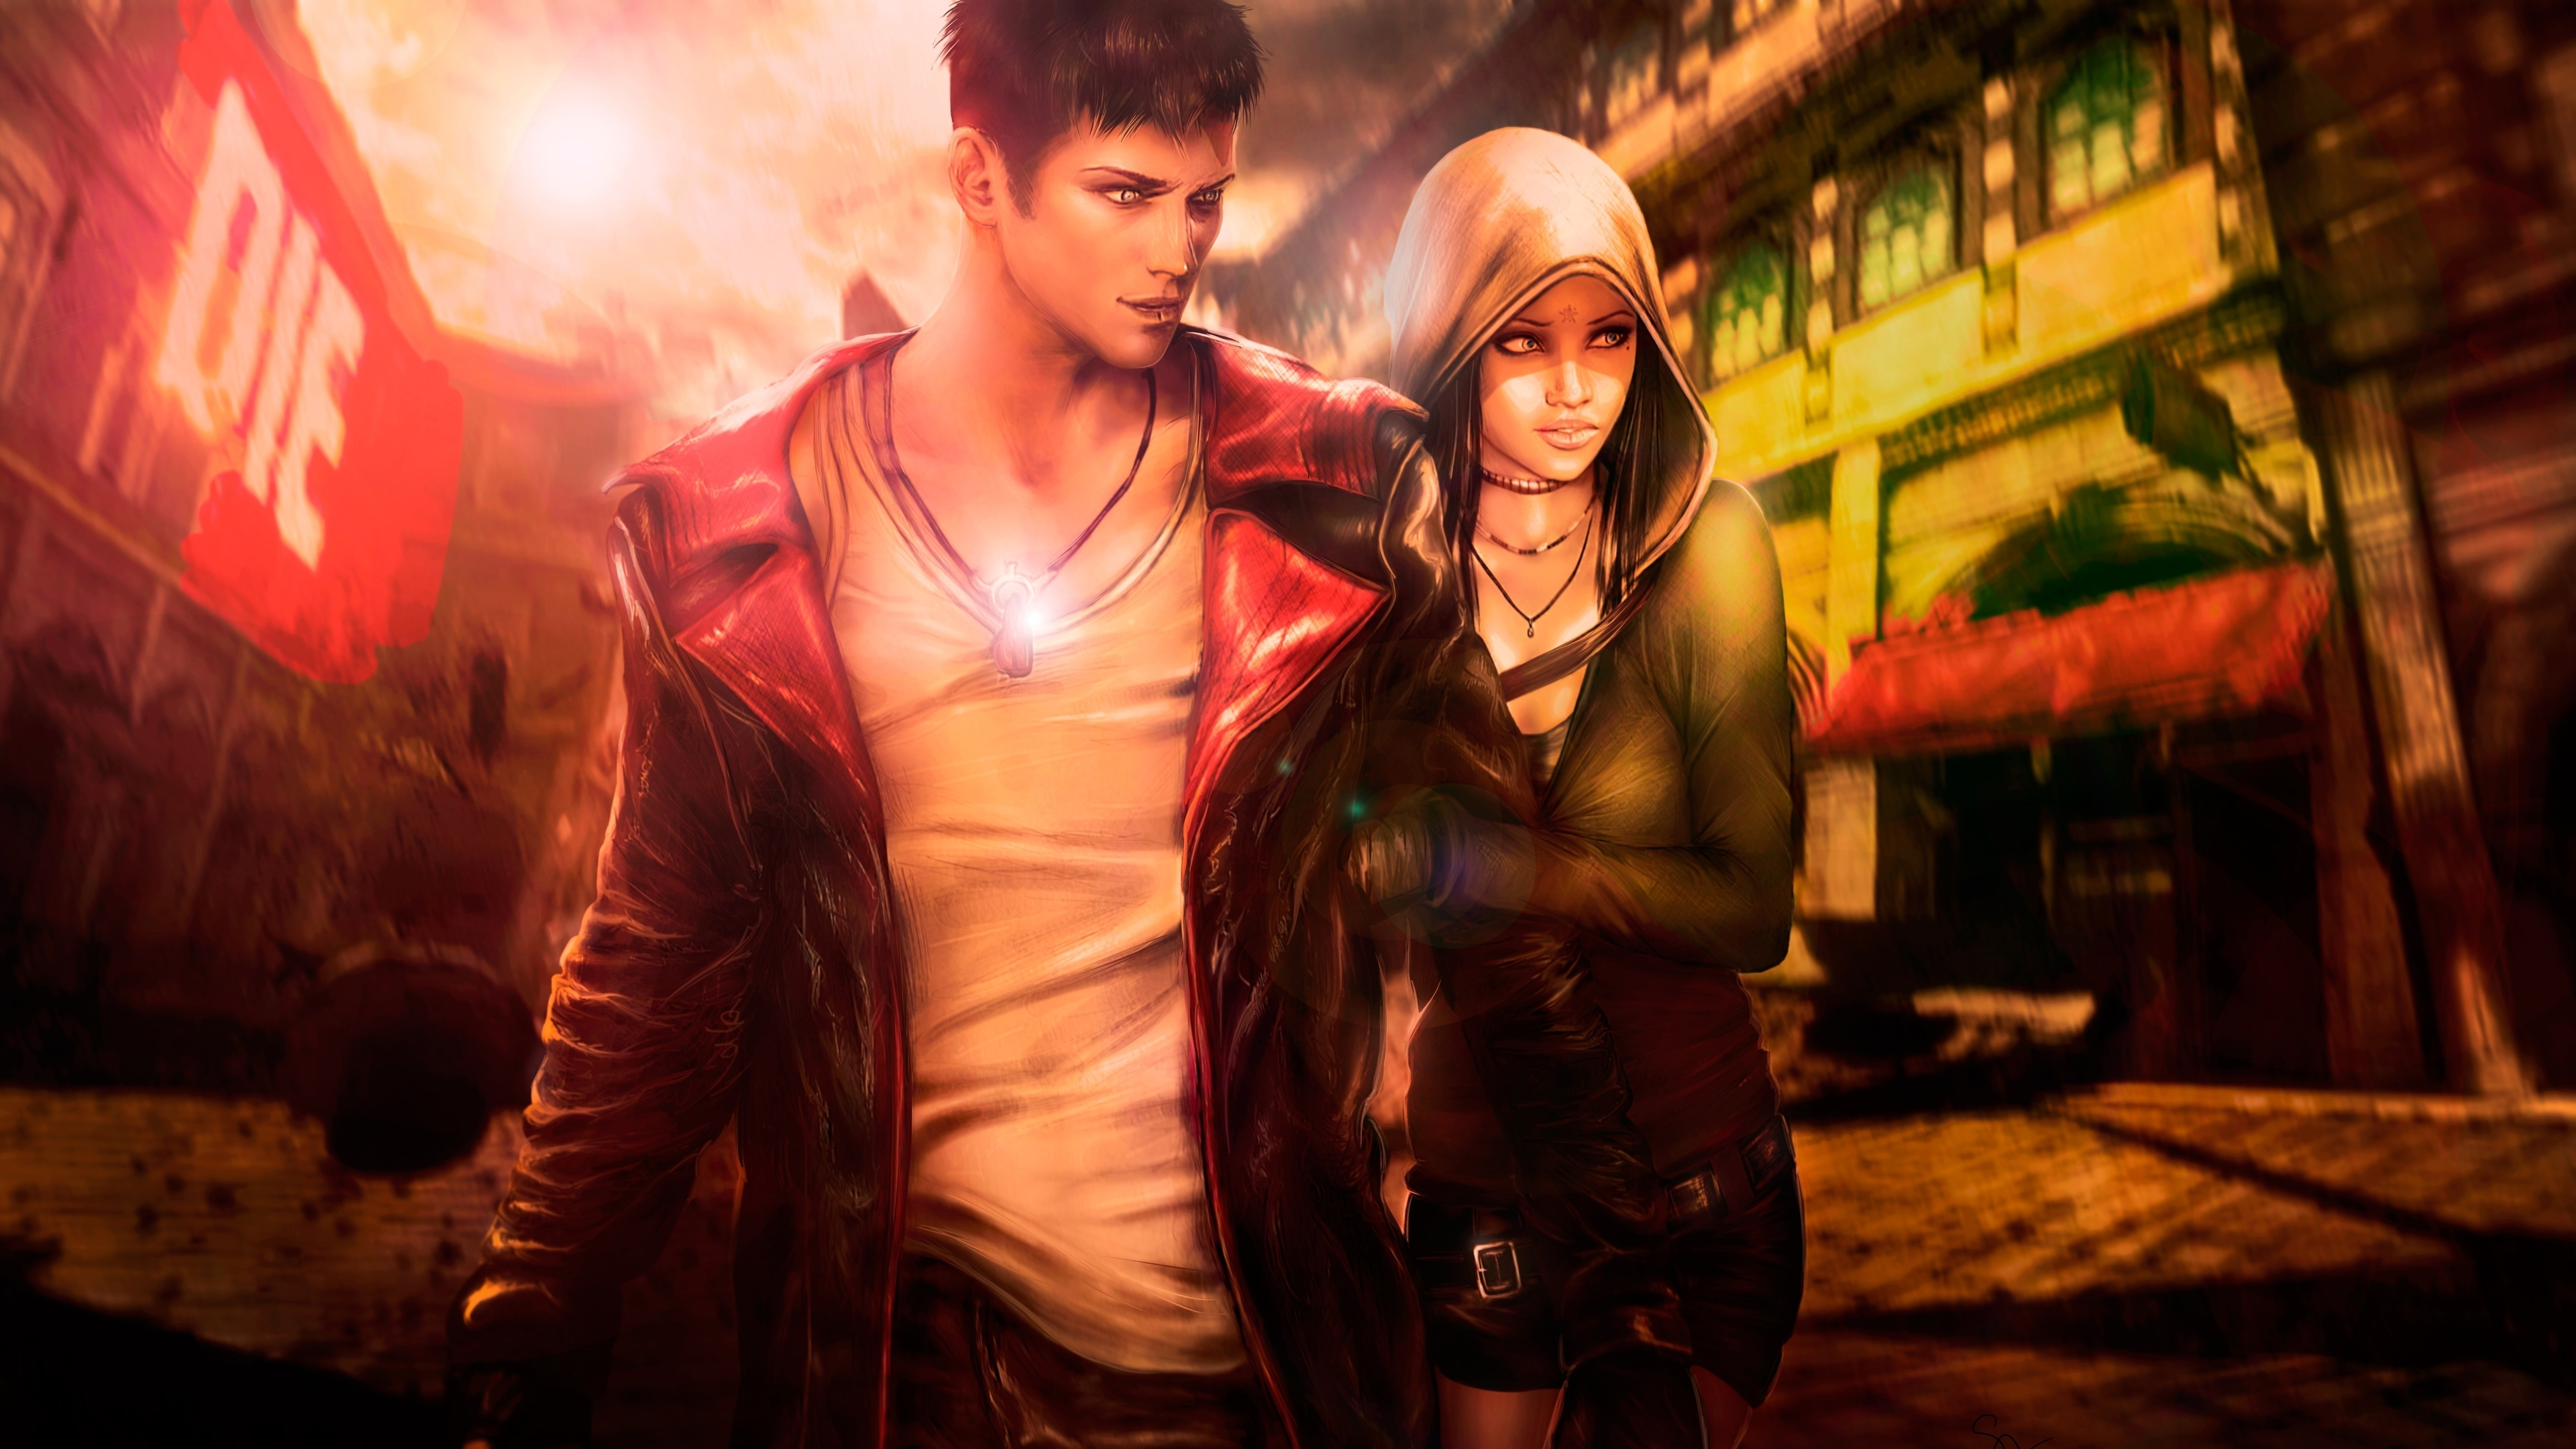 Wallpaper 4k Devil May Cry 5 Dante X Kat 2019 Games Wallpapers 4k